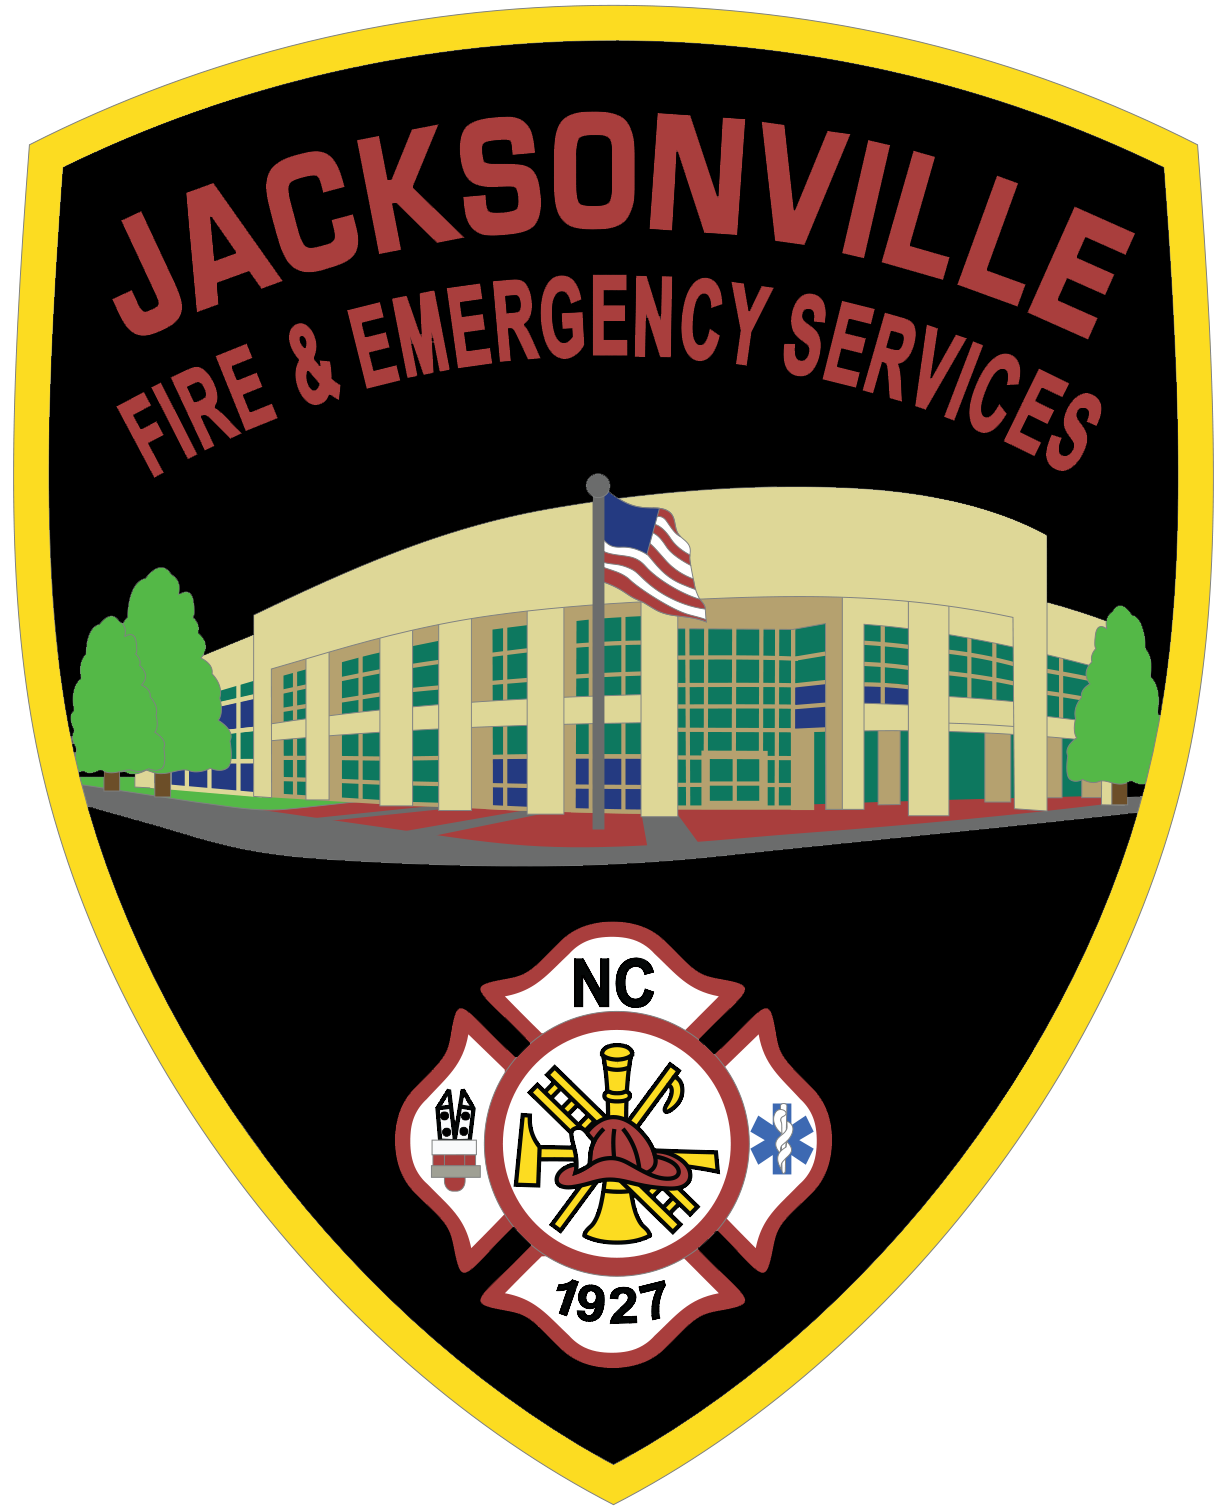 Jacksonville Fire and Emergency Services patch